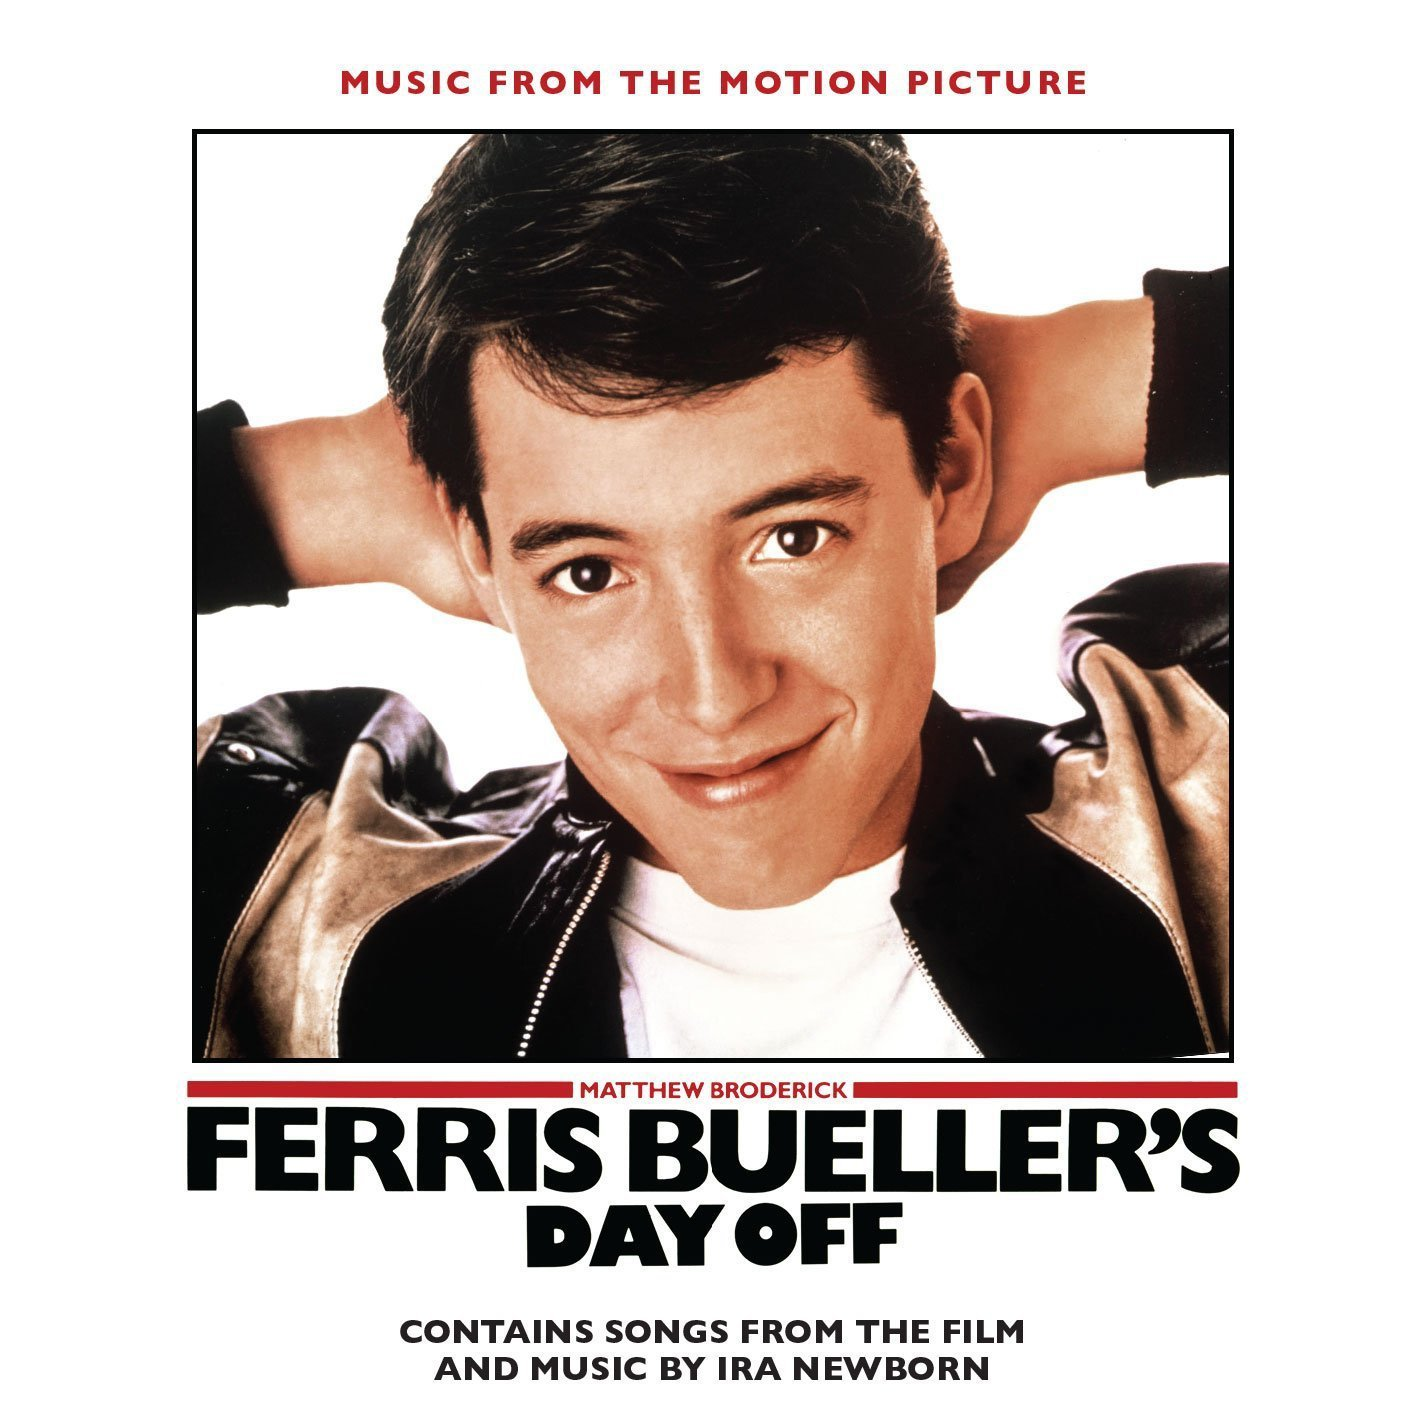 ferris bueller The 100 Greatest Movie Soundtracks of All Time